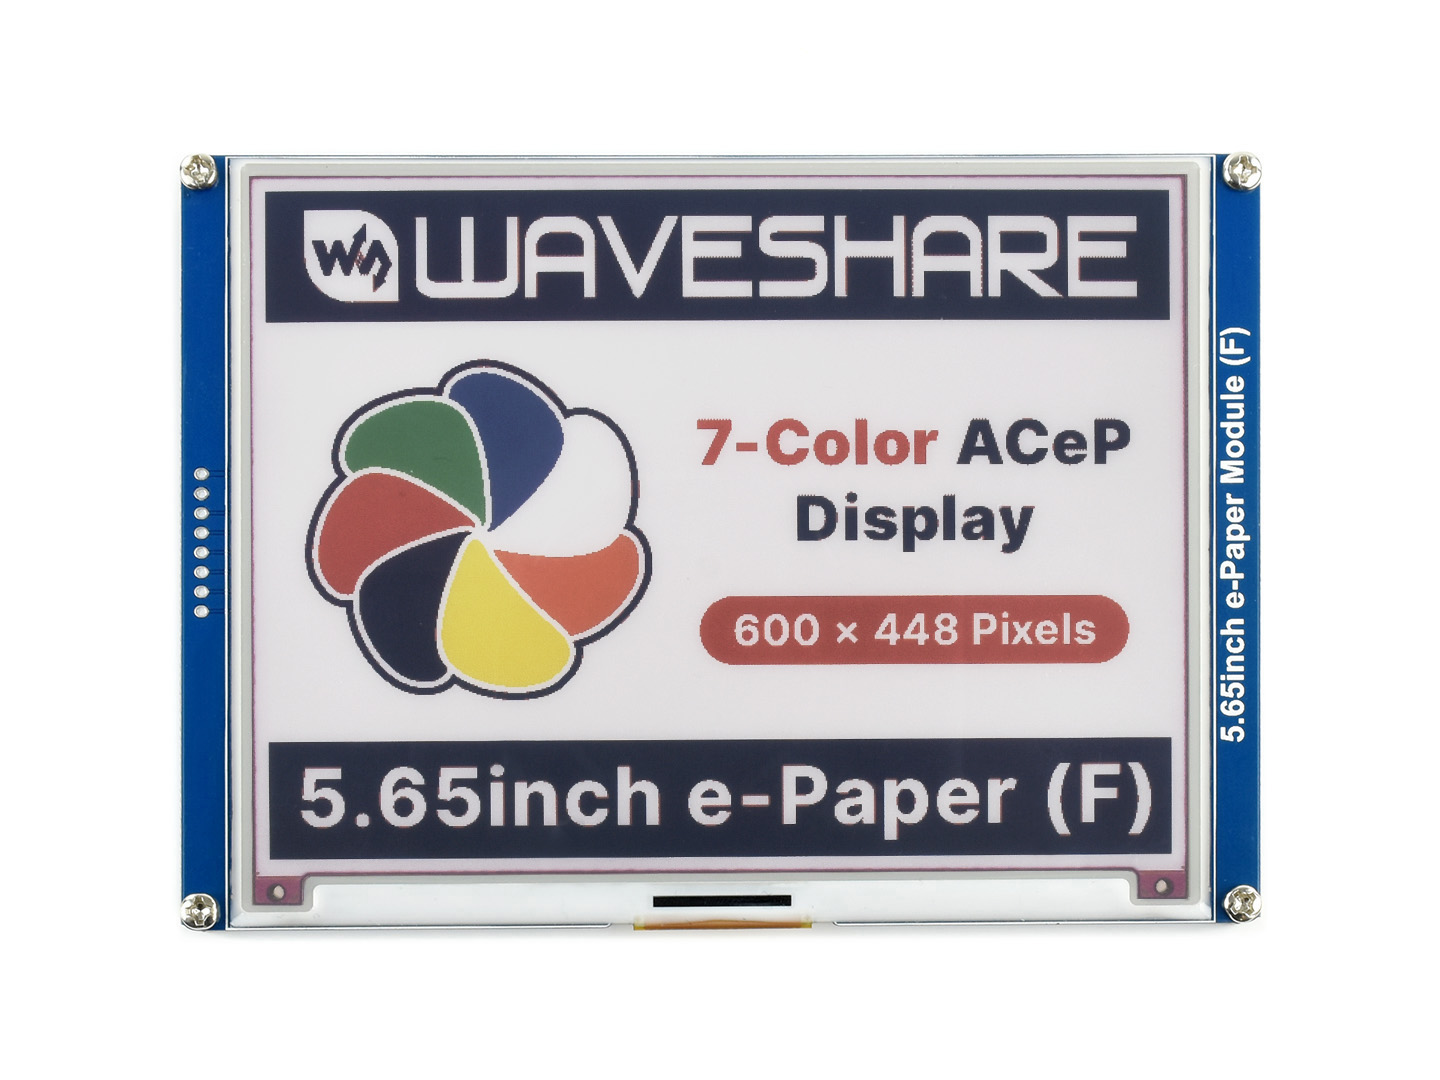 5.65inch ACeP 7-Color E-Paper E-Ink Display Module, 600×448 Pixels, Paper-Like Displaying Without Electricity,e-Paper Module (F)